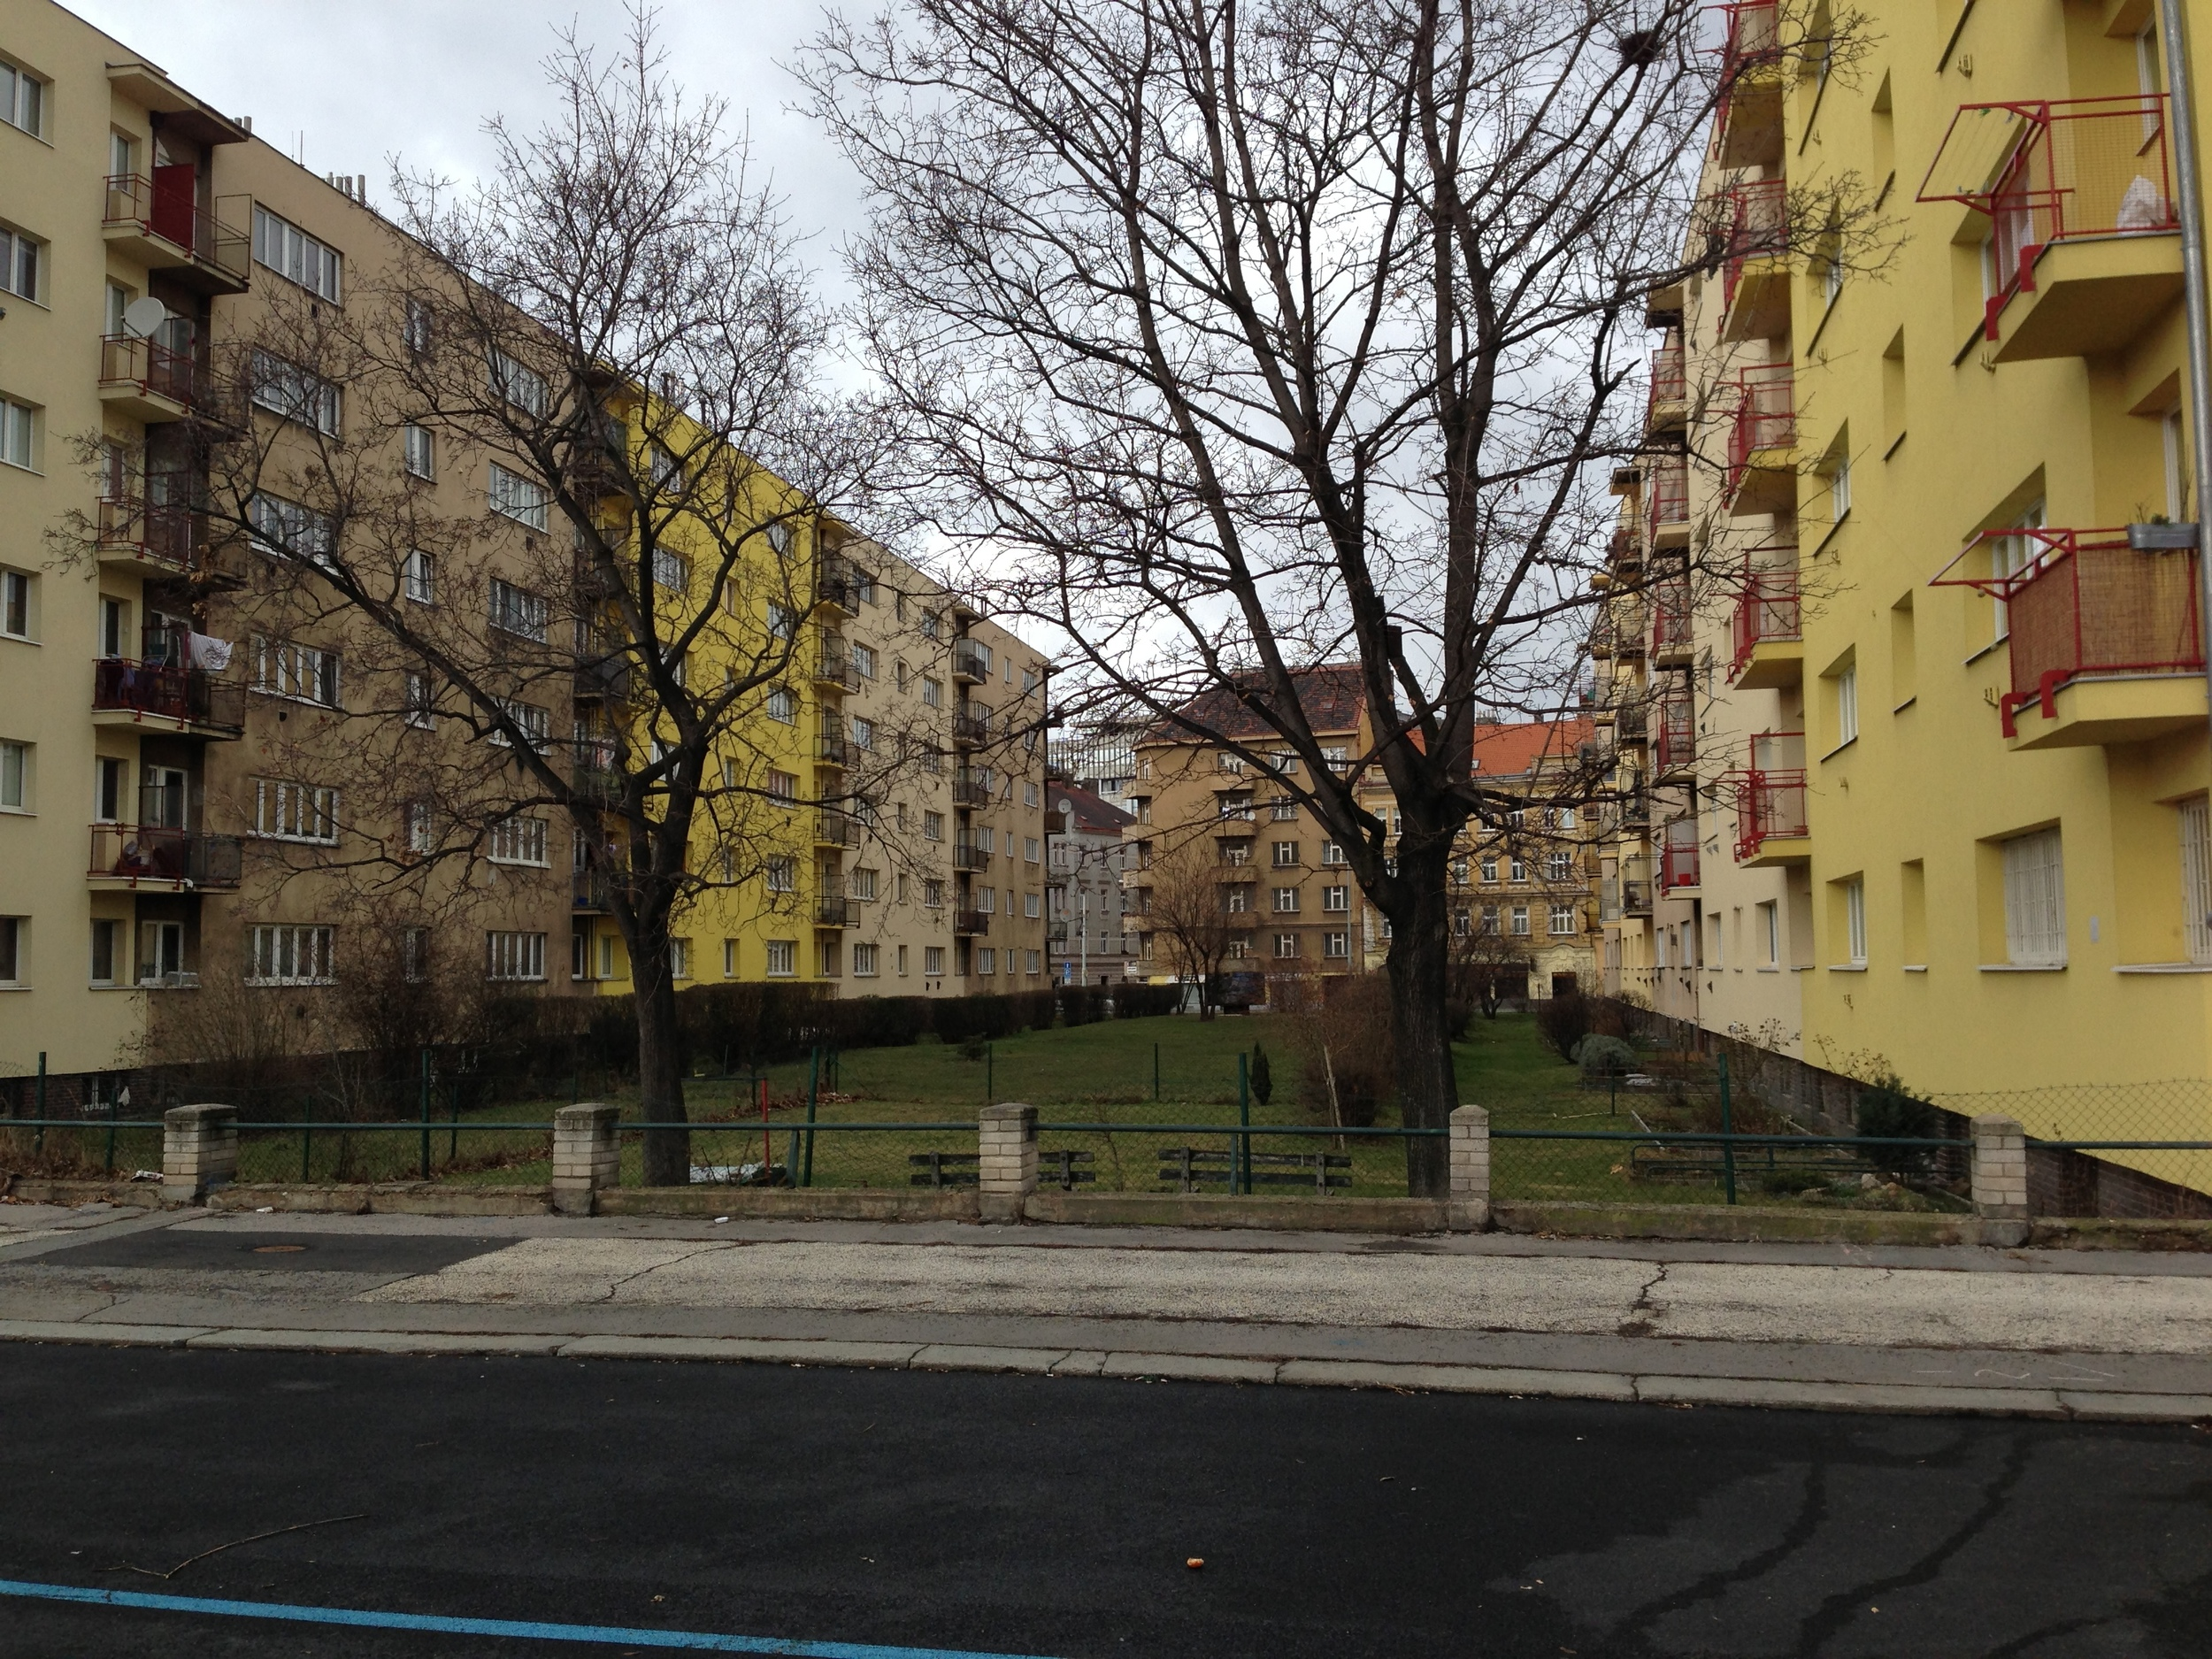 Apartment blocks 2